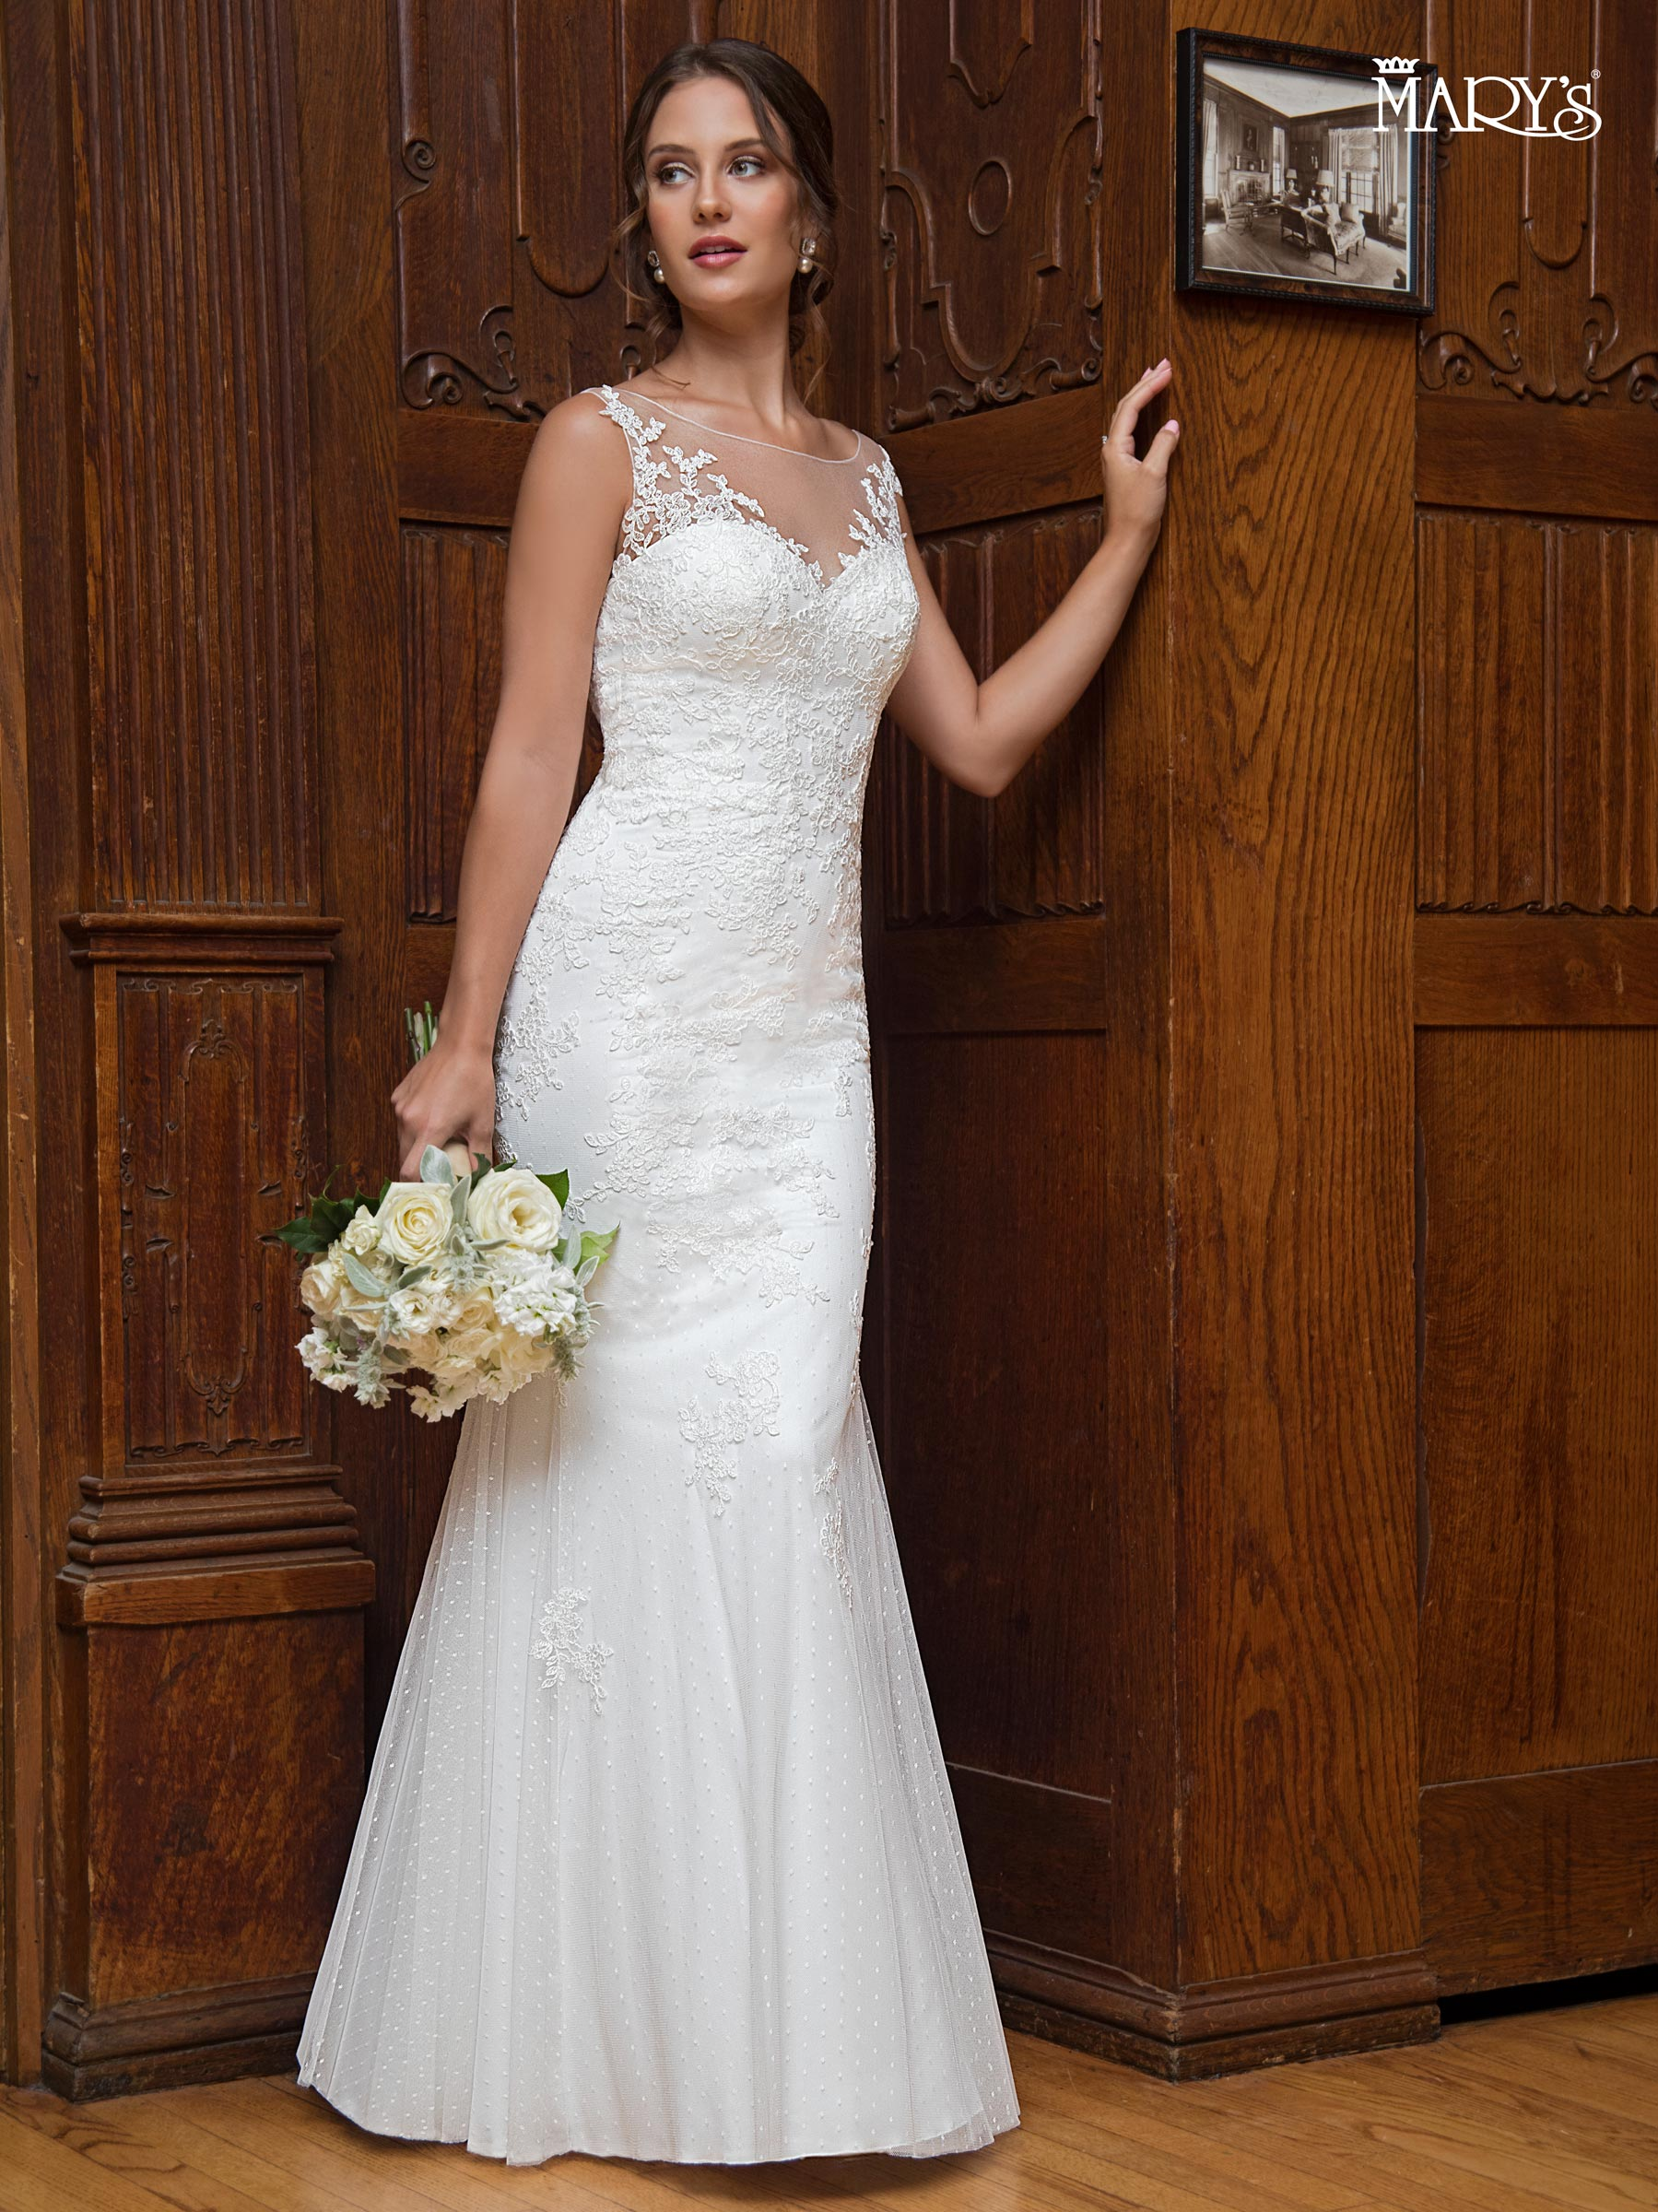 Bridal Wedding Dresses | Mary's | Style - MB1004